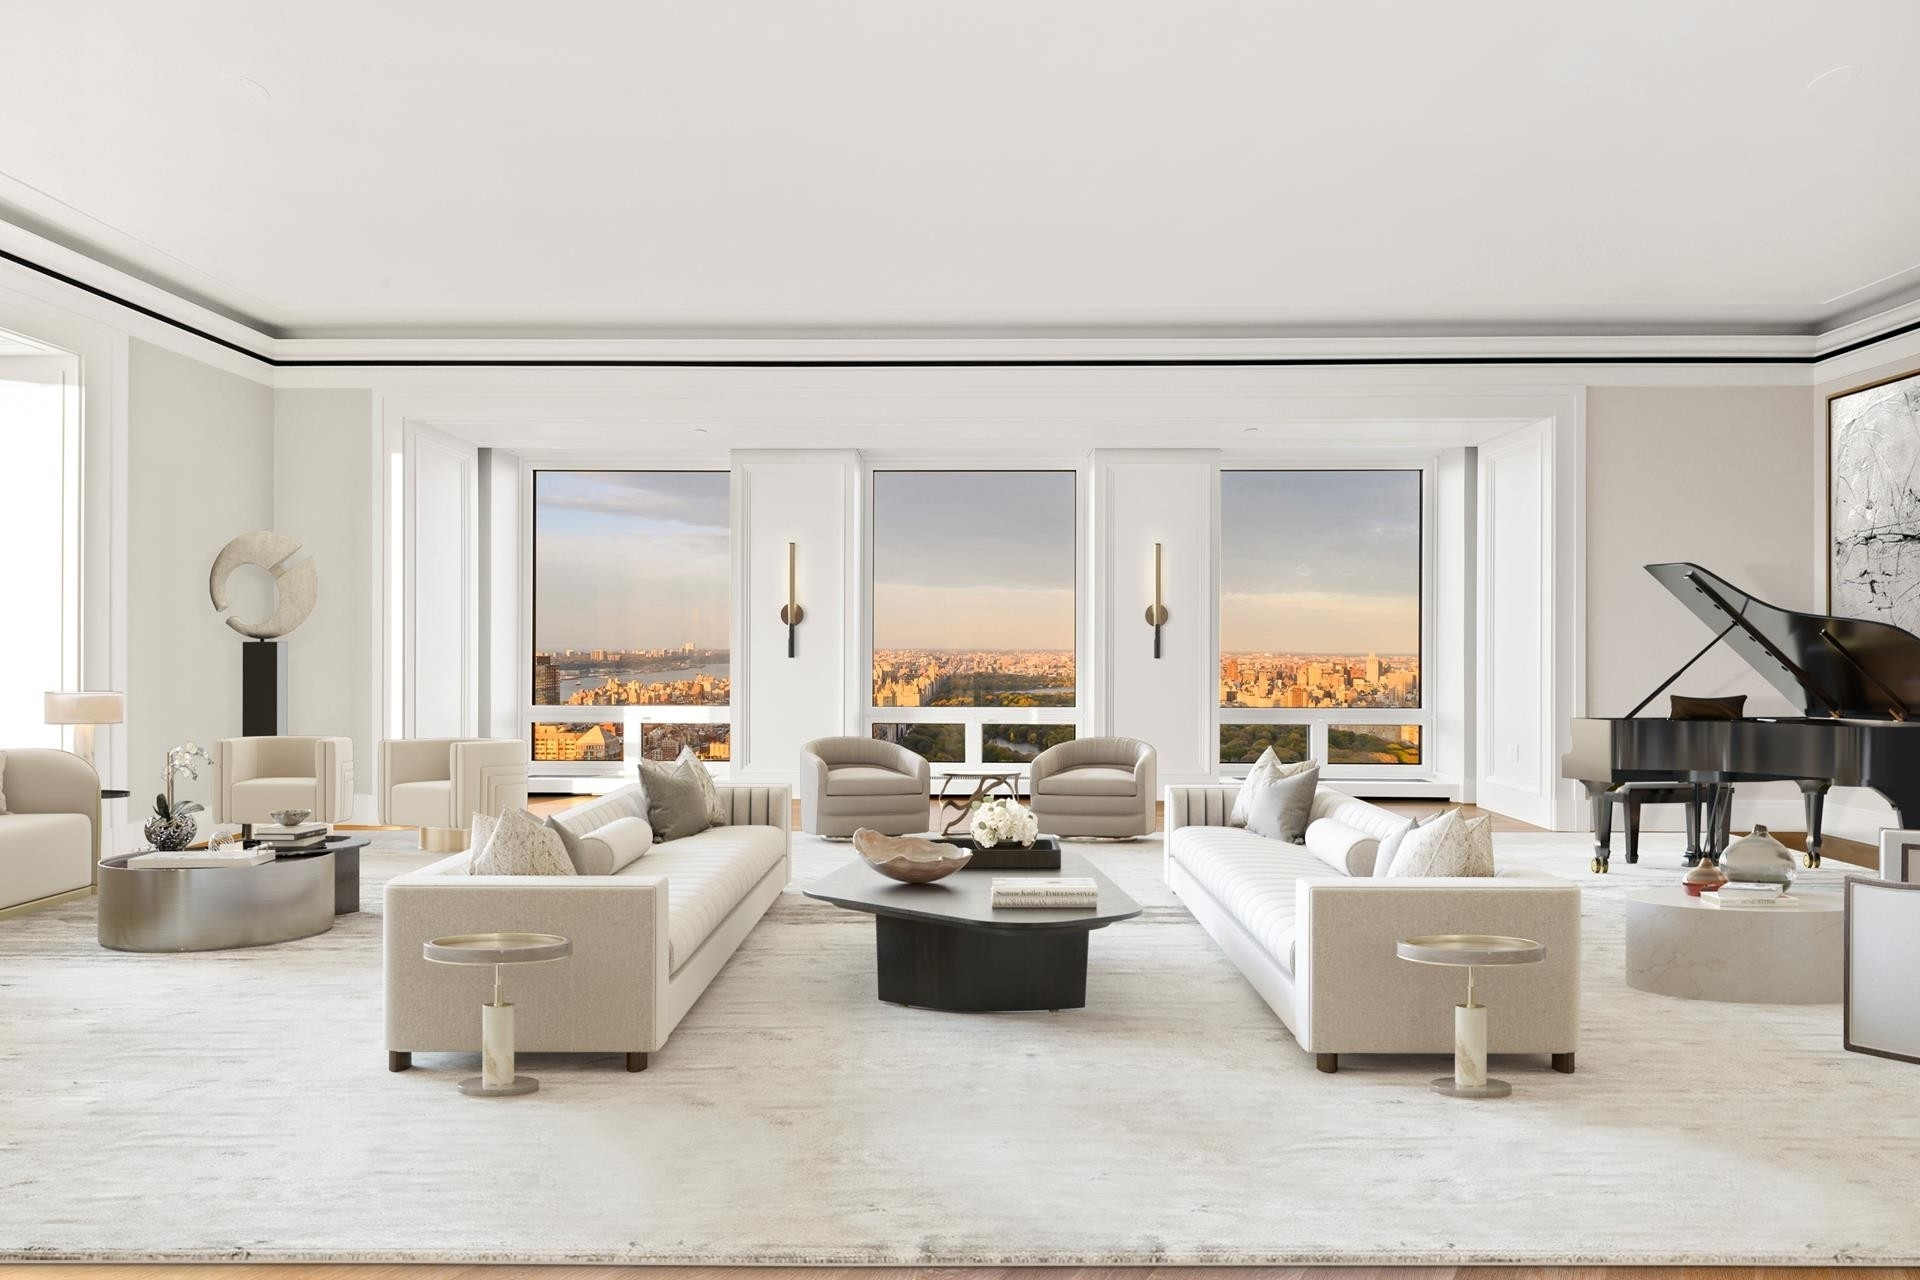 Condominium pour l Vente à 220 CPS, 220 CENTRAL PARK S, 54/55A Central Park South, New York, NY 10019